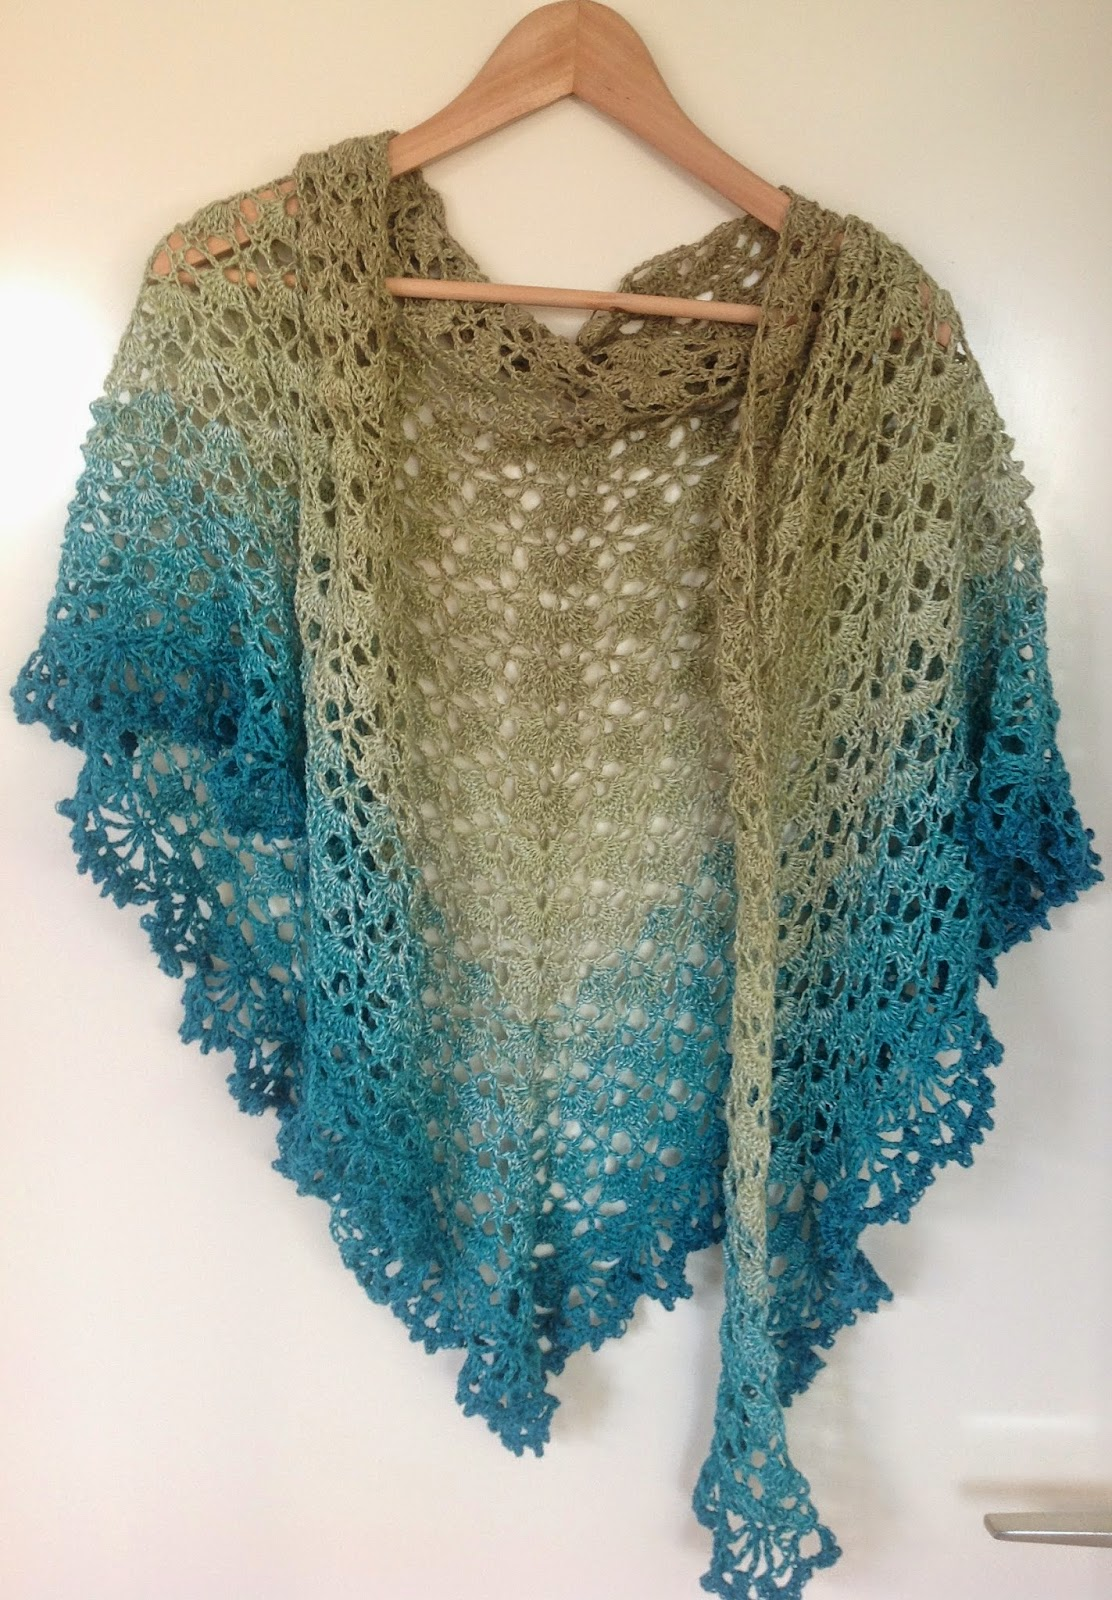 Crochet Patterns Shawls And Wraps : K van Kneuterig: crochet shawl